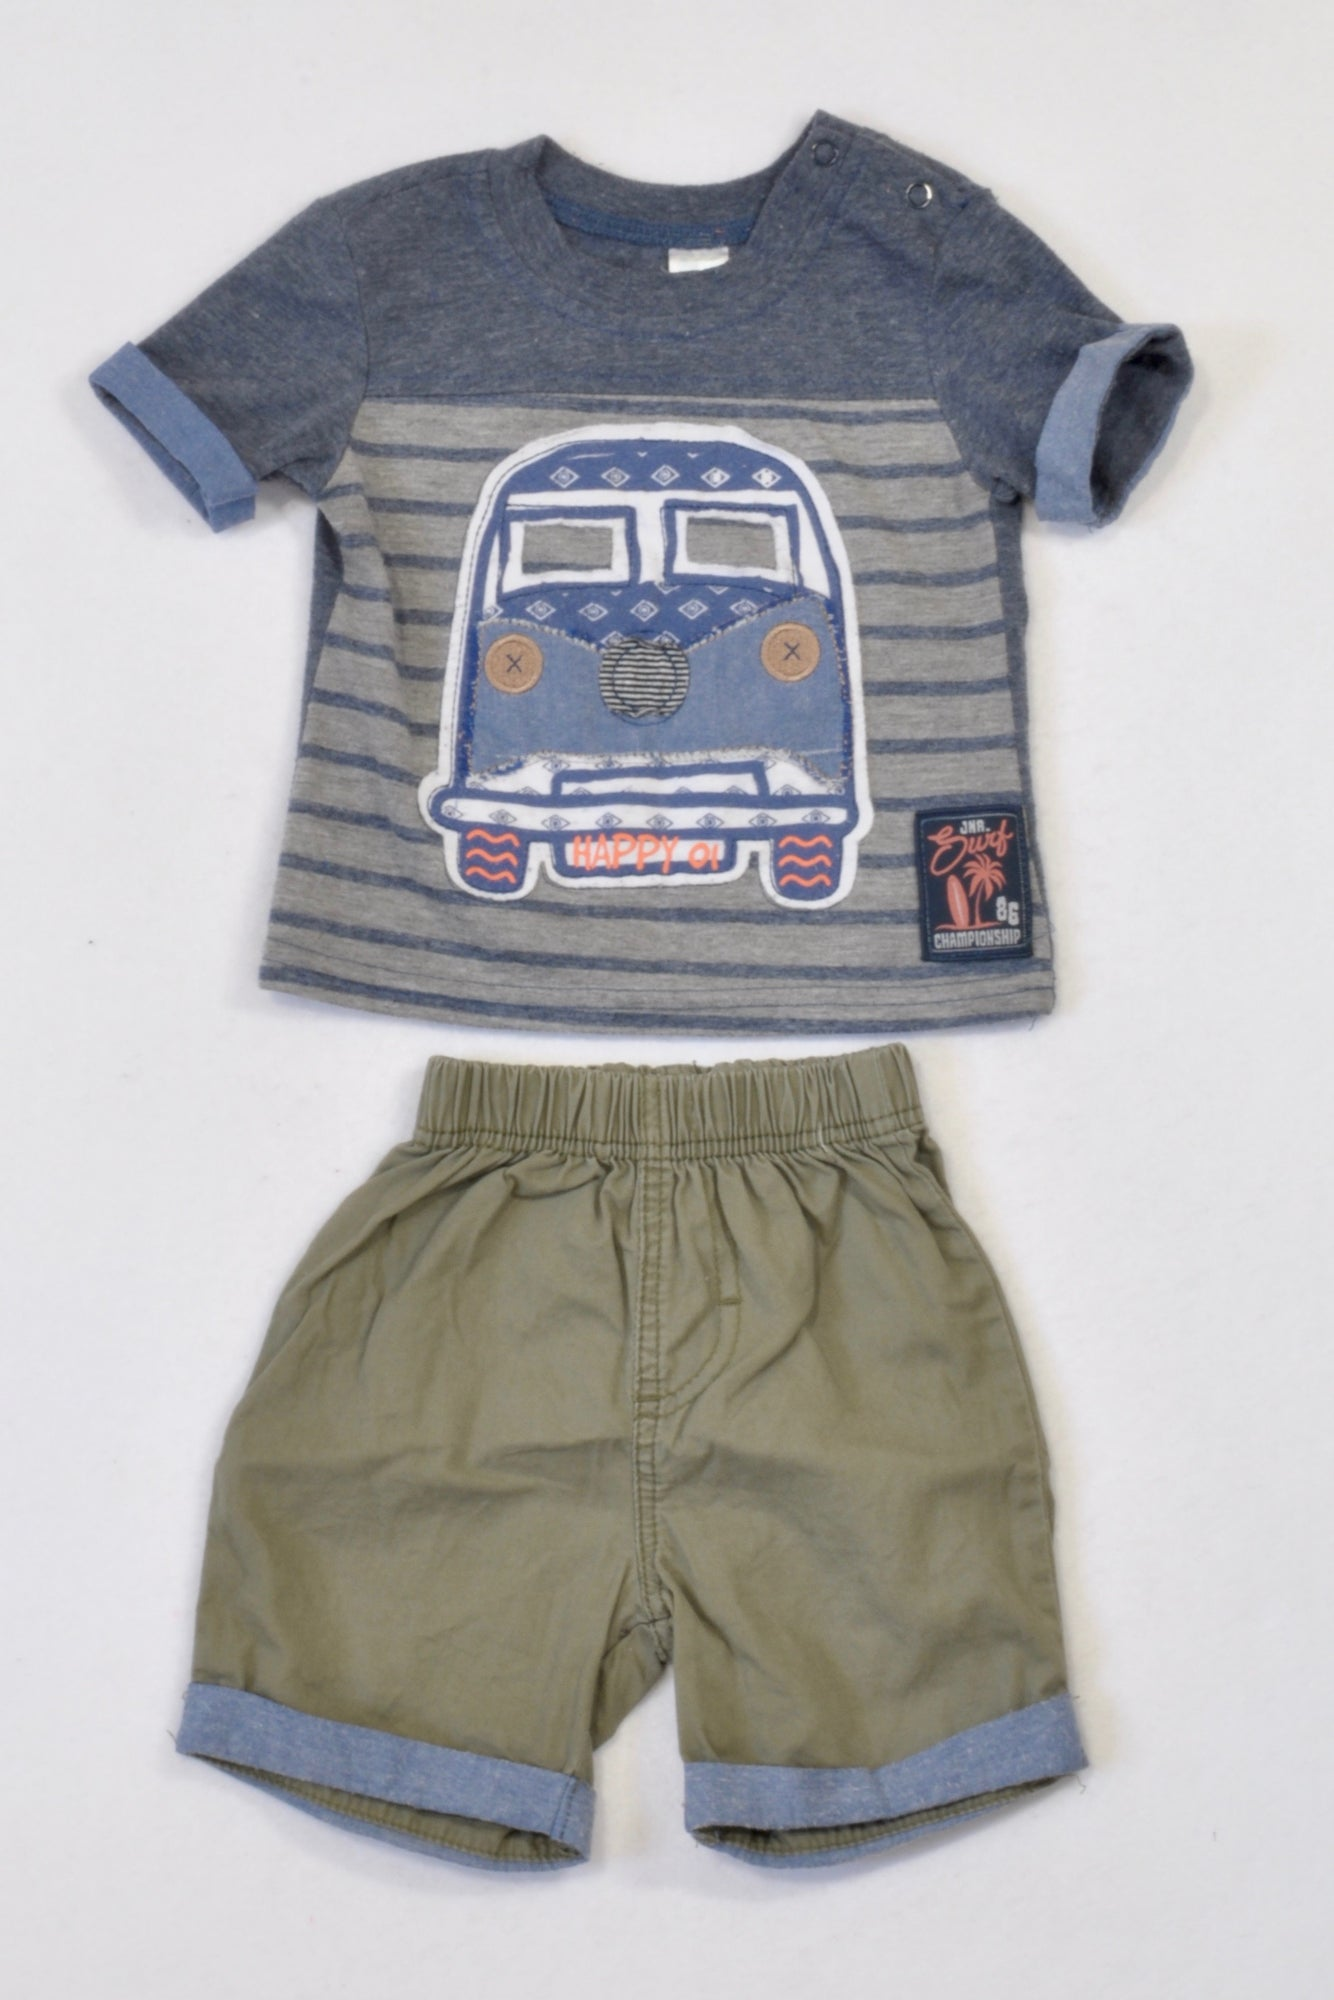 Ackermans Olive & Blue Heathered Car Outfit Boys 3-6 months